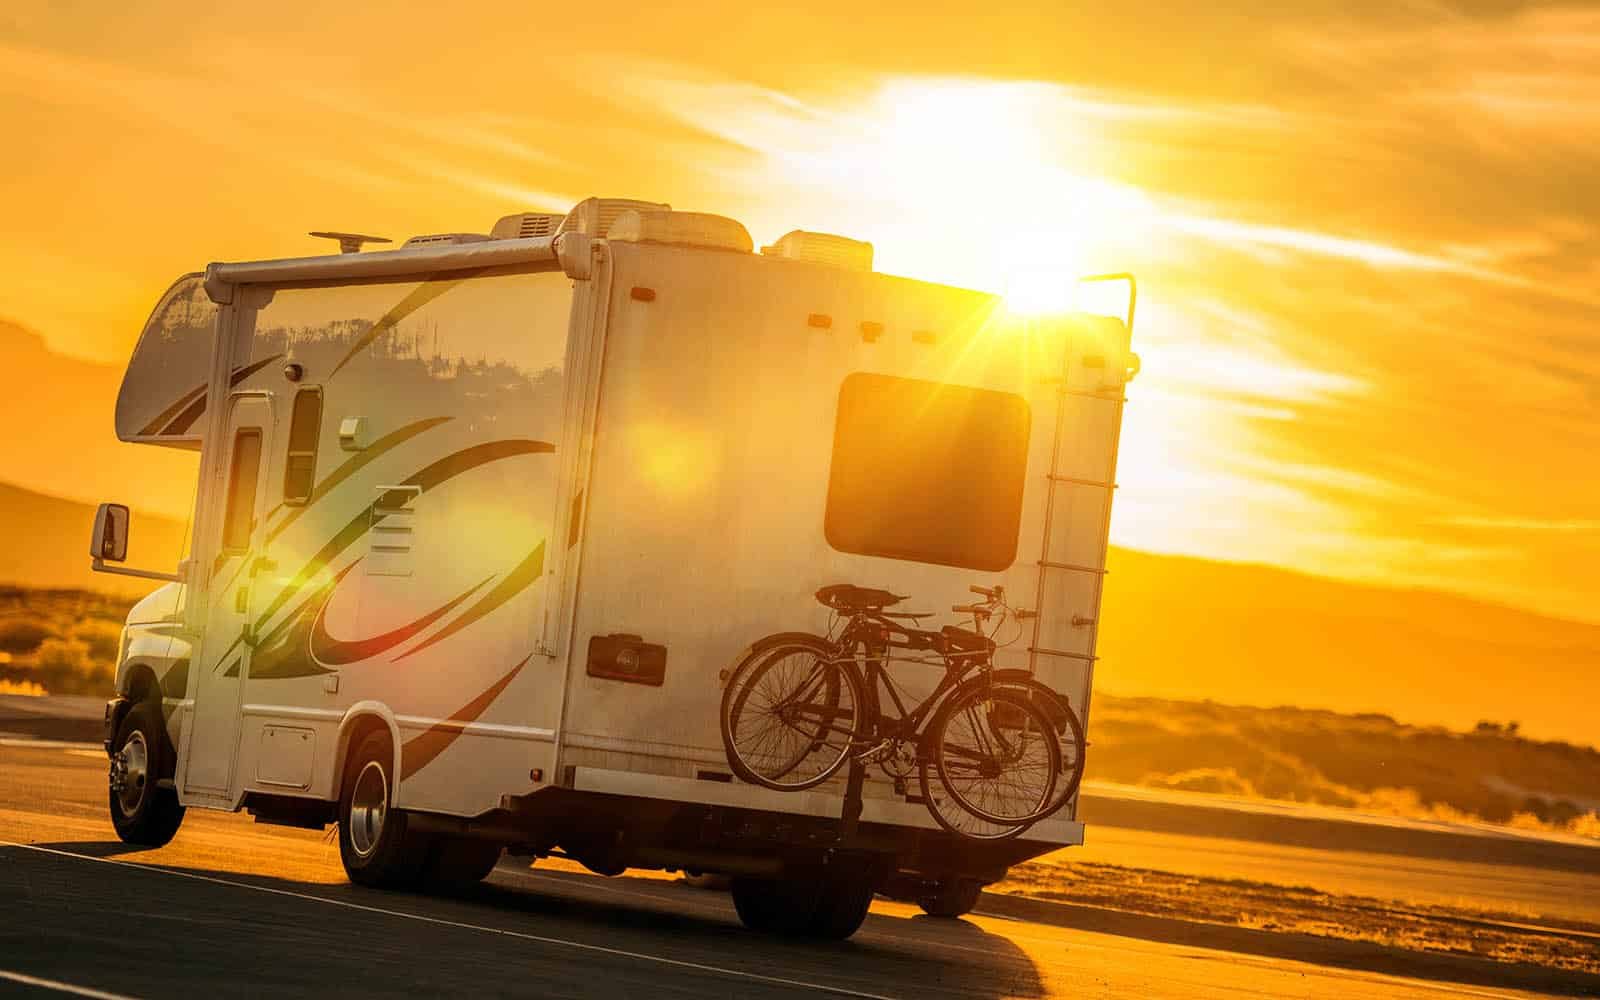 Camping in an RV During Sunset